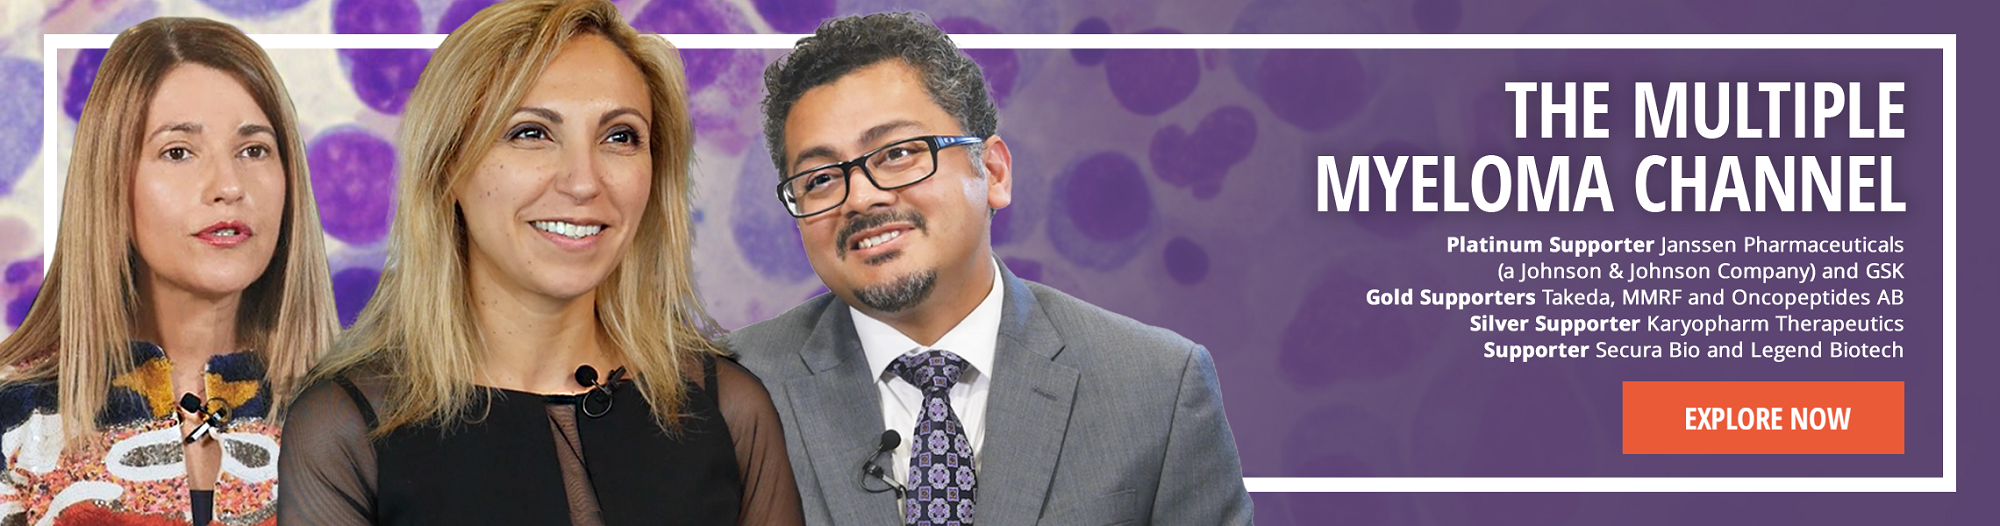 Watch the Multiple Myeloma Channel